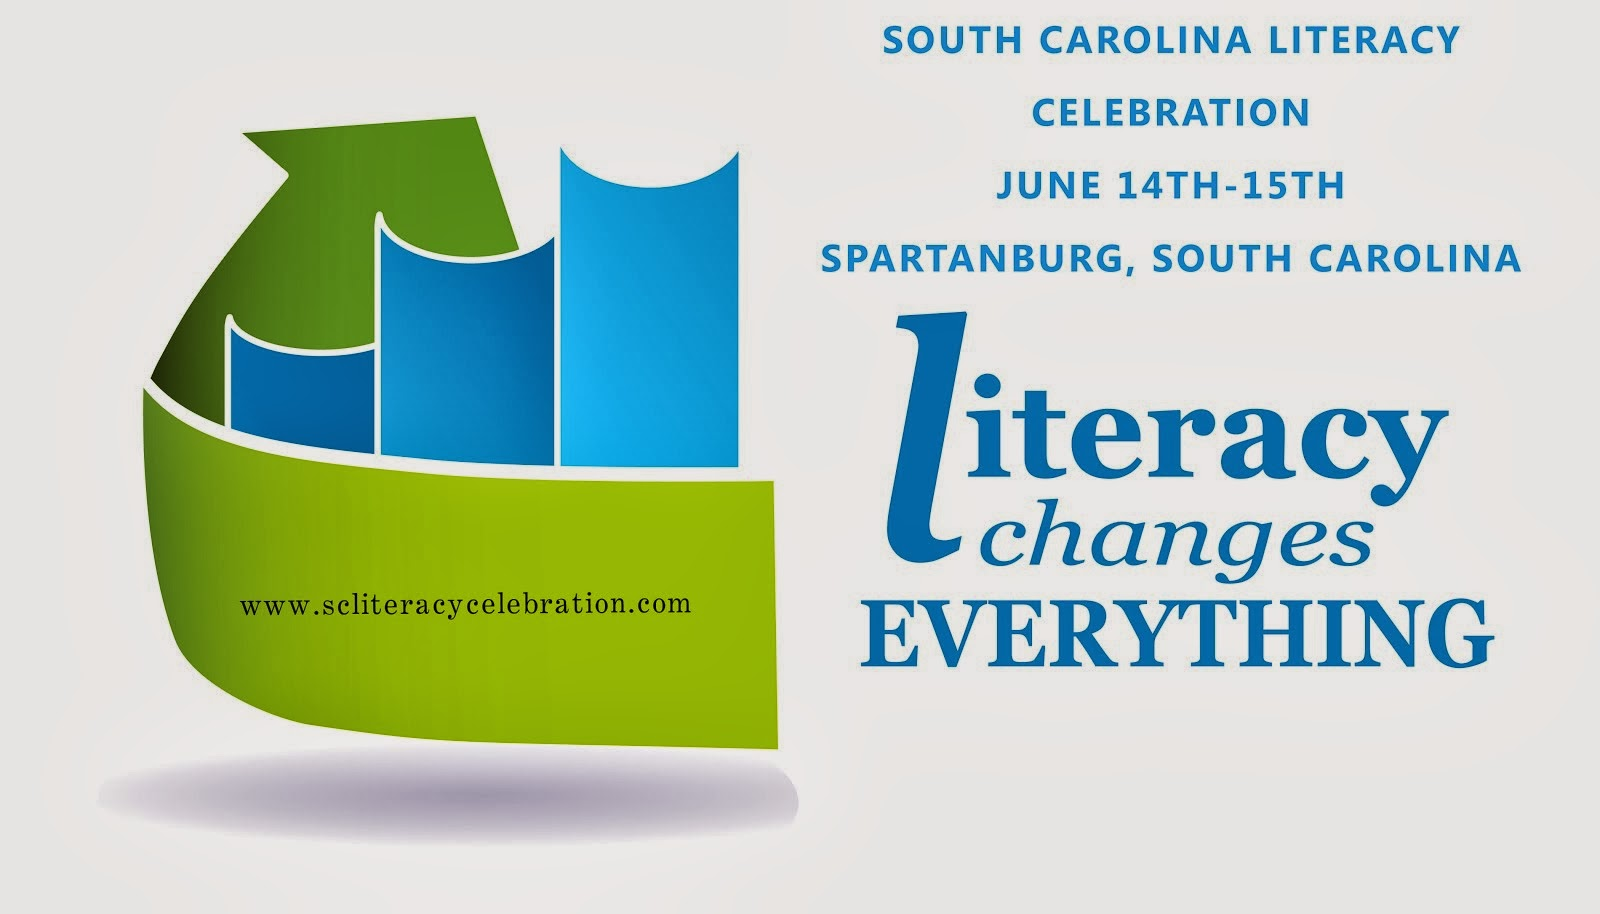 South Carolina Literacy Celebration